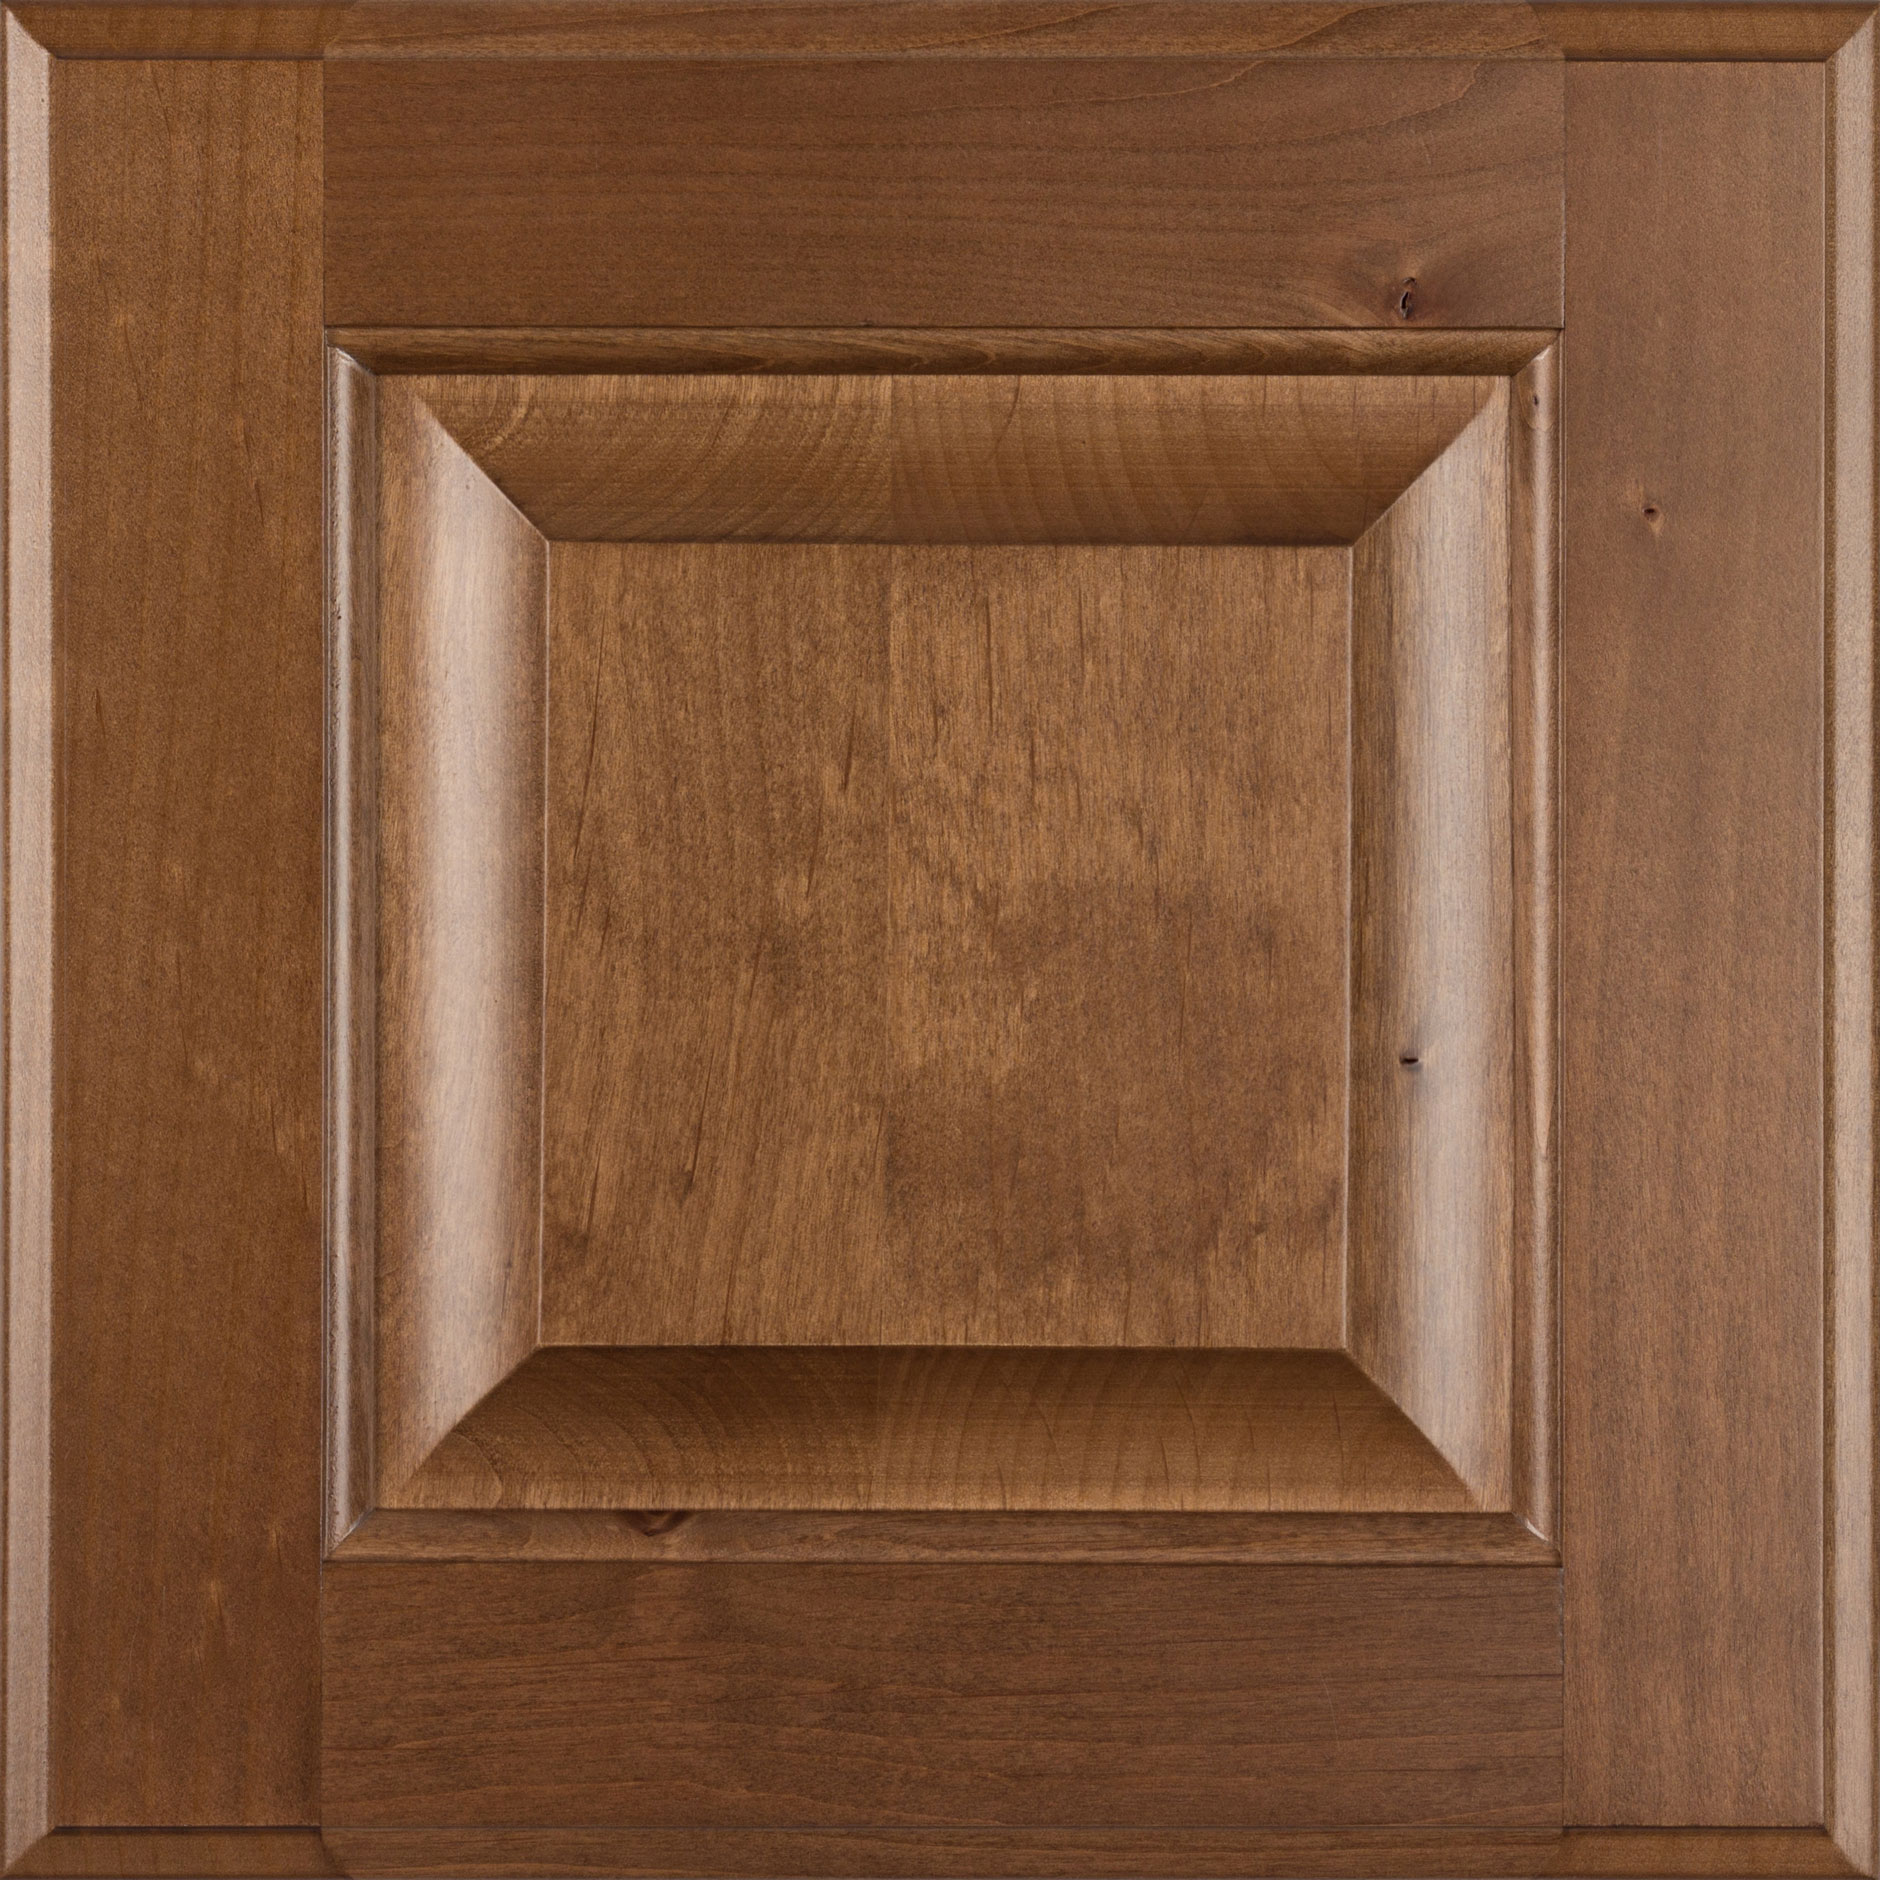 Cabinet Pulls 5-piece Raised Panel In Clear Alder Bali - Burrows